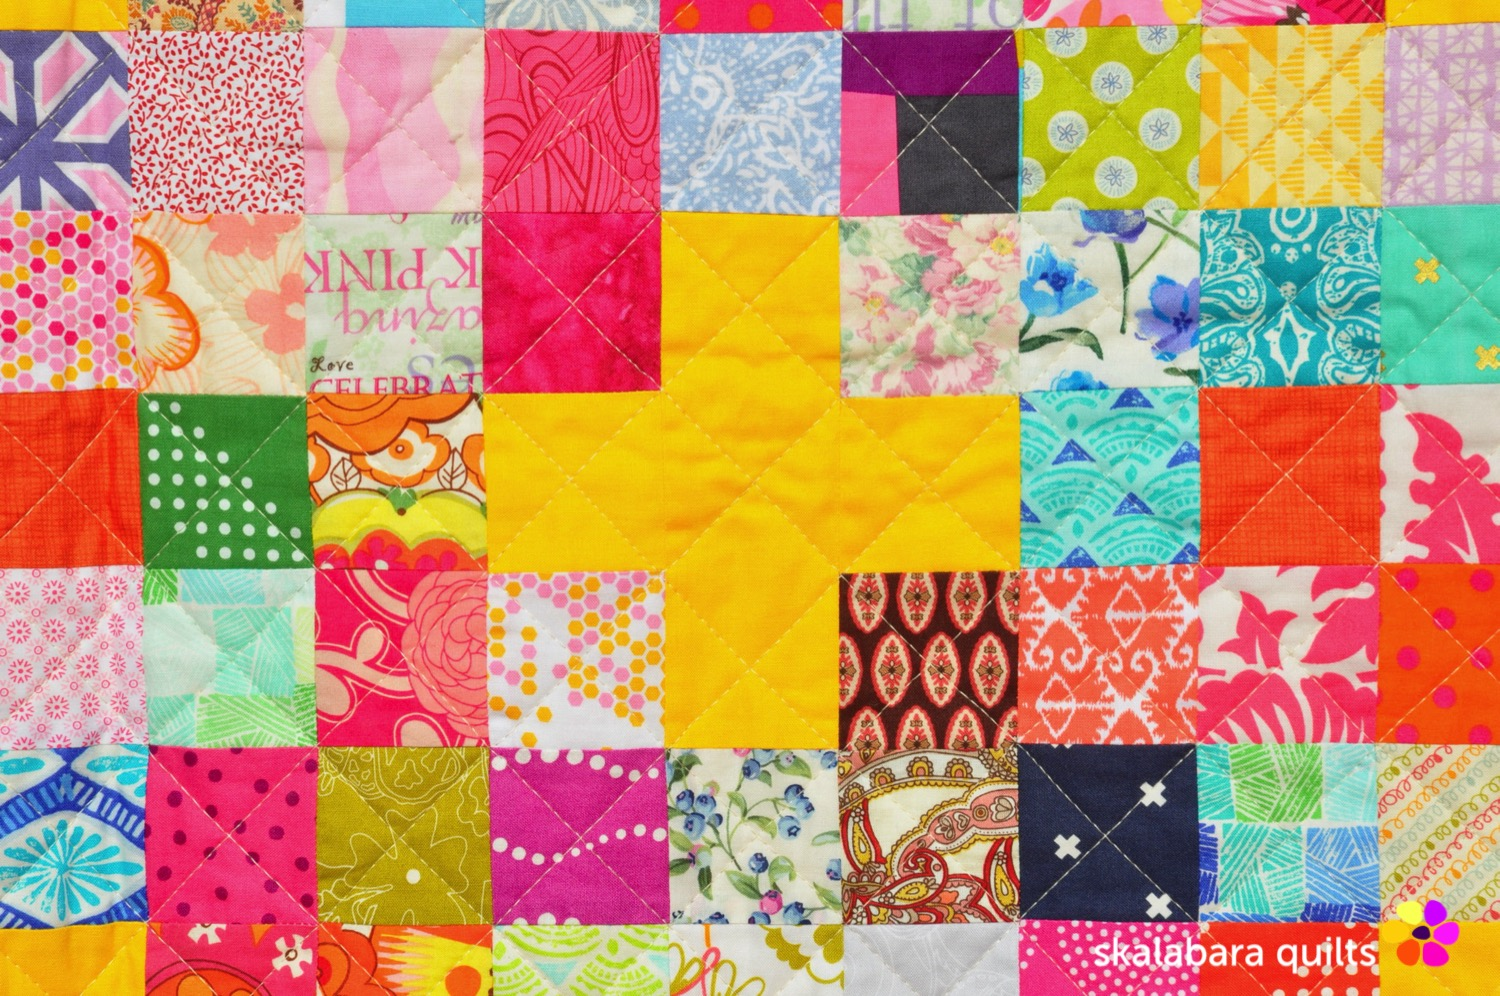 scrappy checkered quilt with crosses detail - skalabara quilts